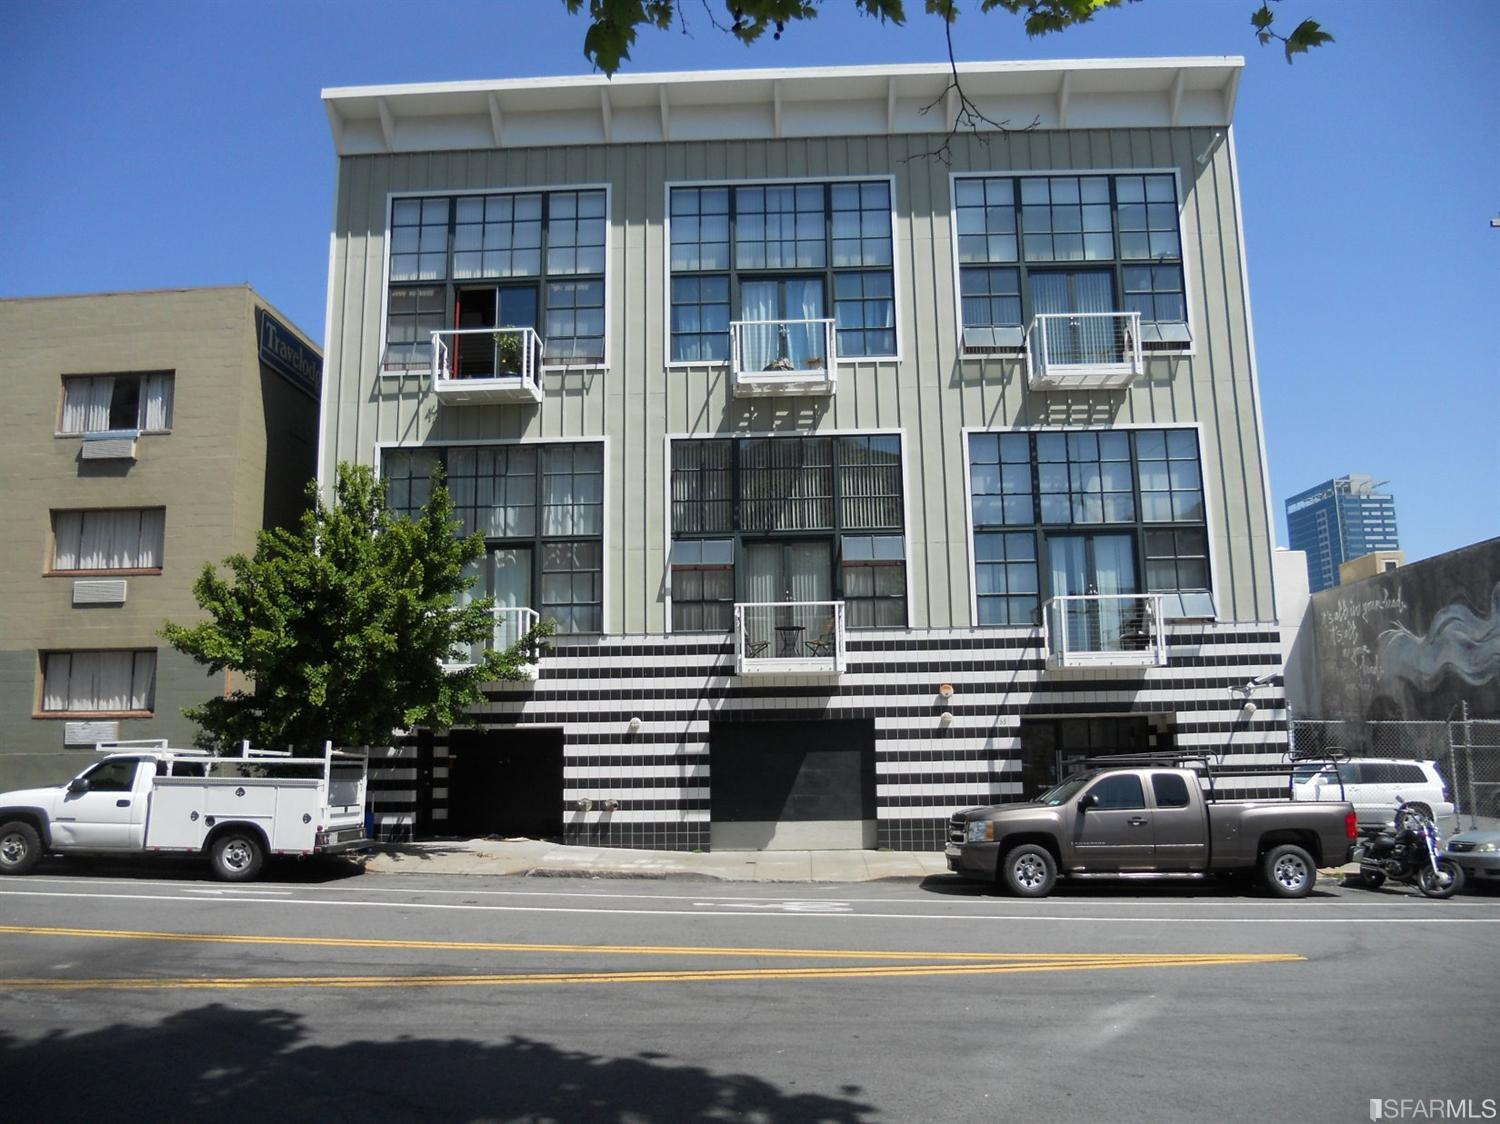 Condo on McCoppin sold by San Francisco real estate agent